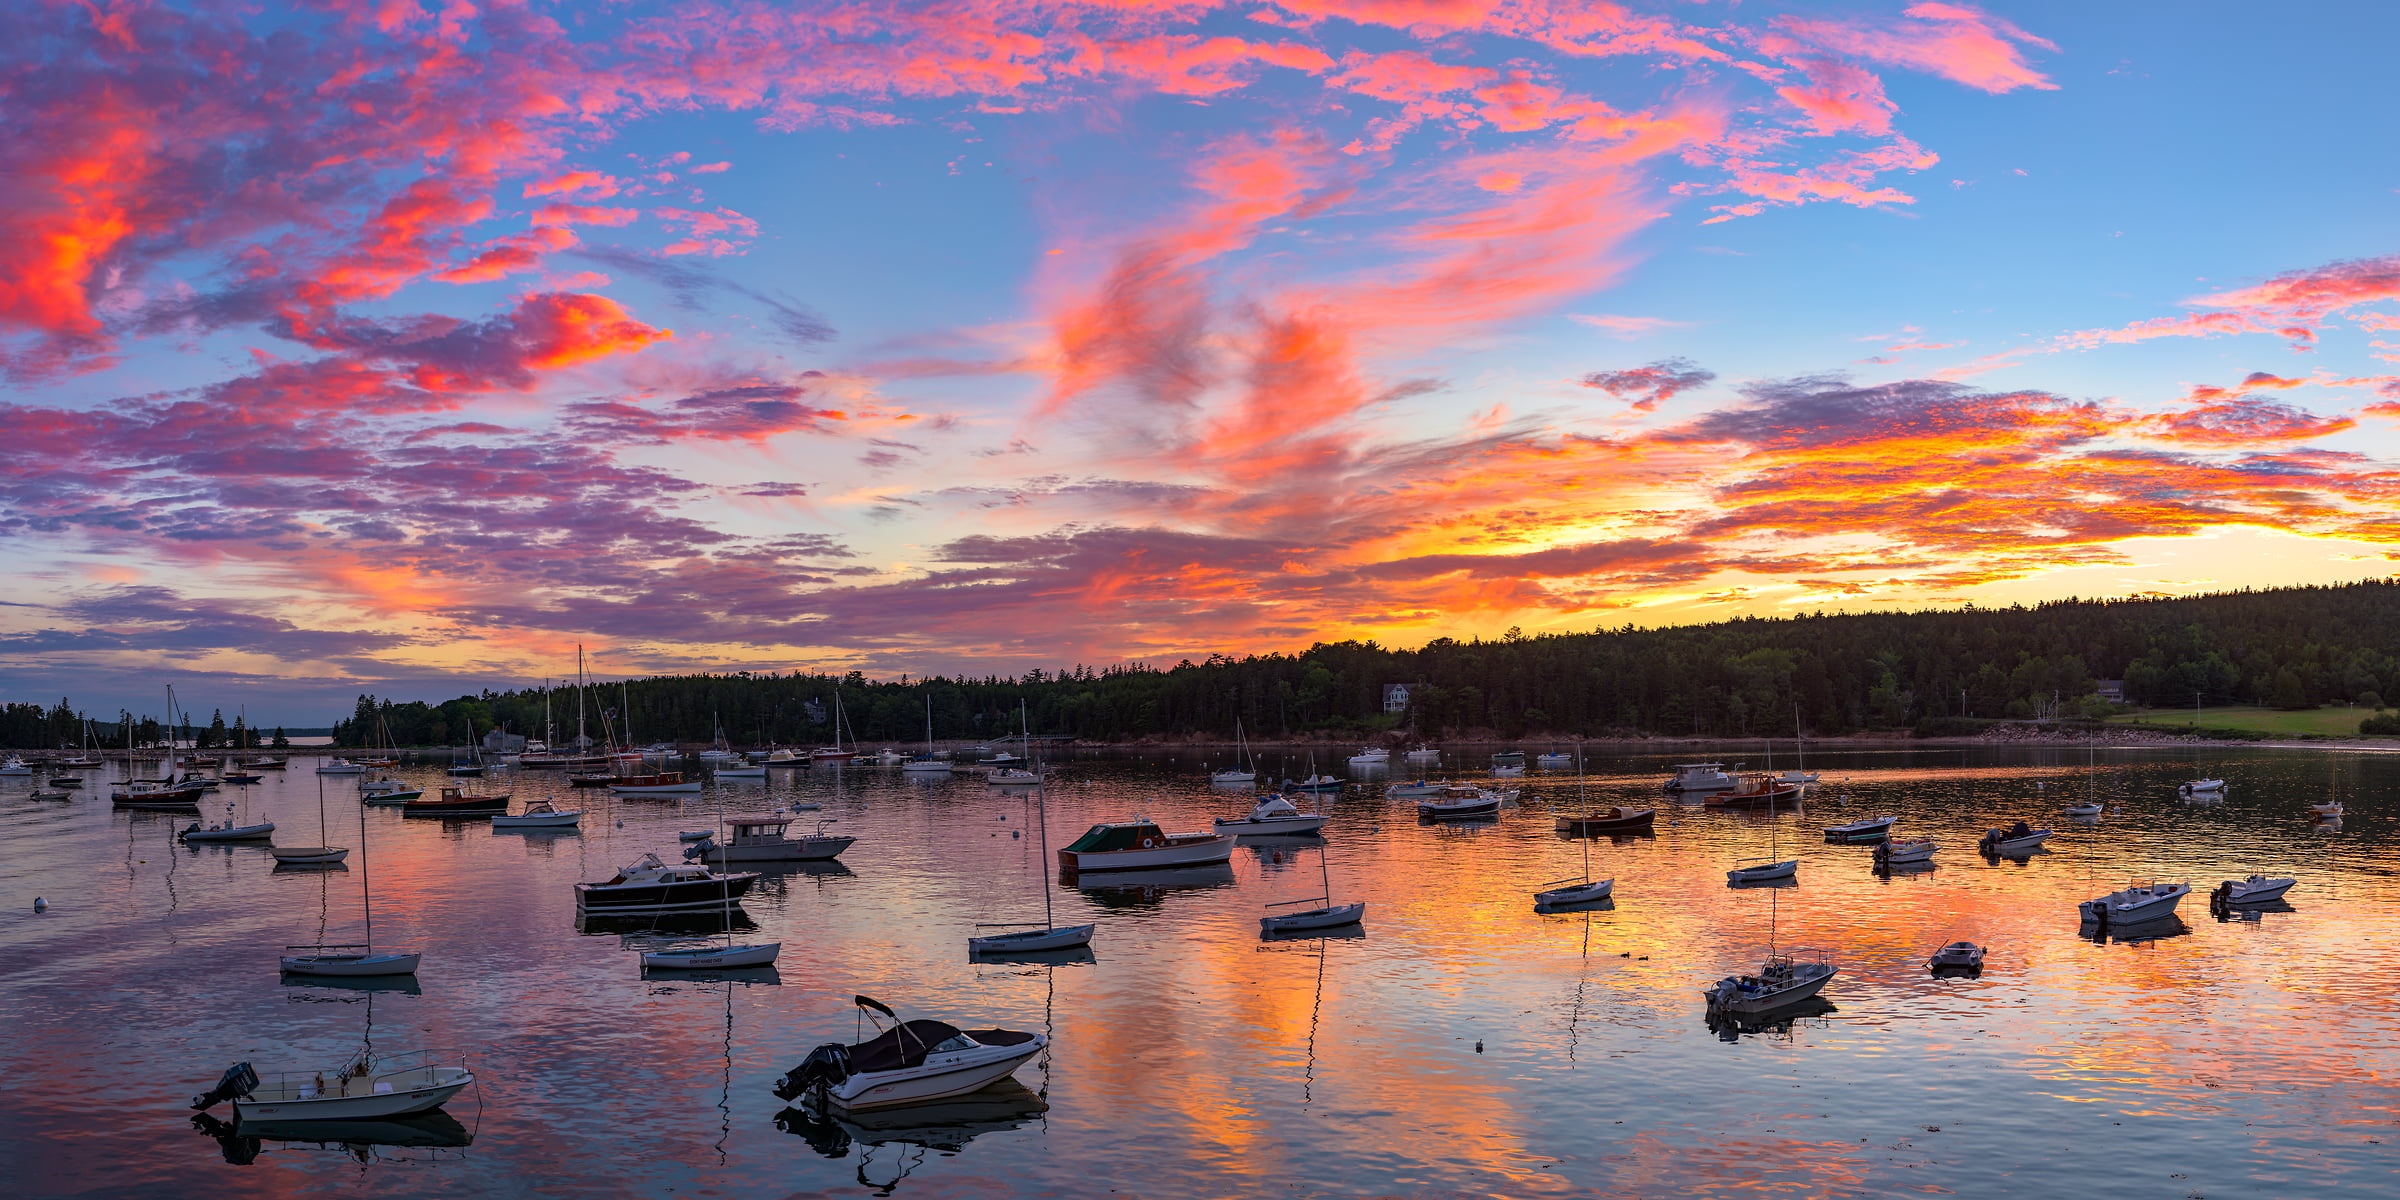 551 megapixels! A very high resolution, large-format VAST photo of a New England harbor with boats at sunset; fine art landscape photograph created by Aaron Priest in Seal Harbor, Maine